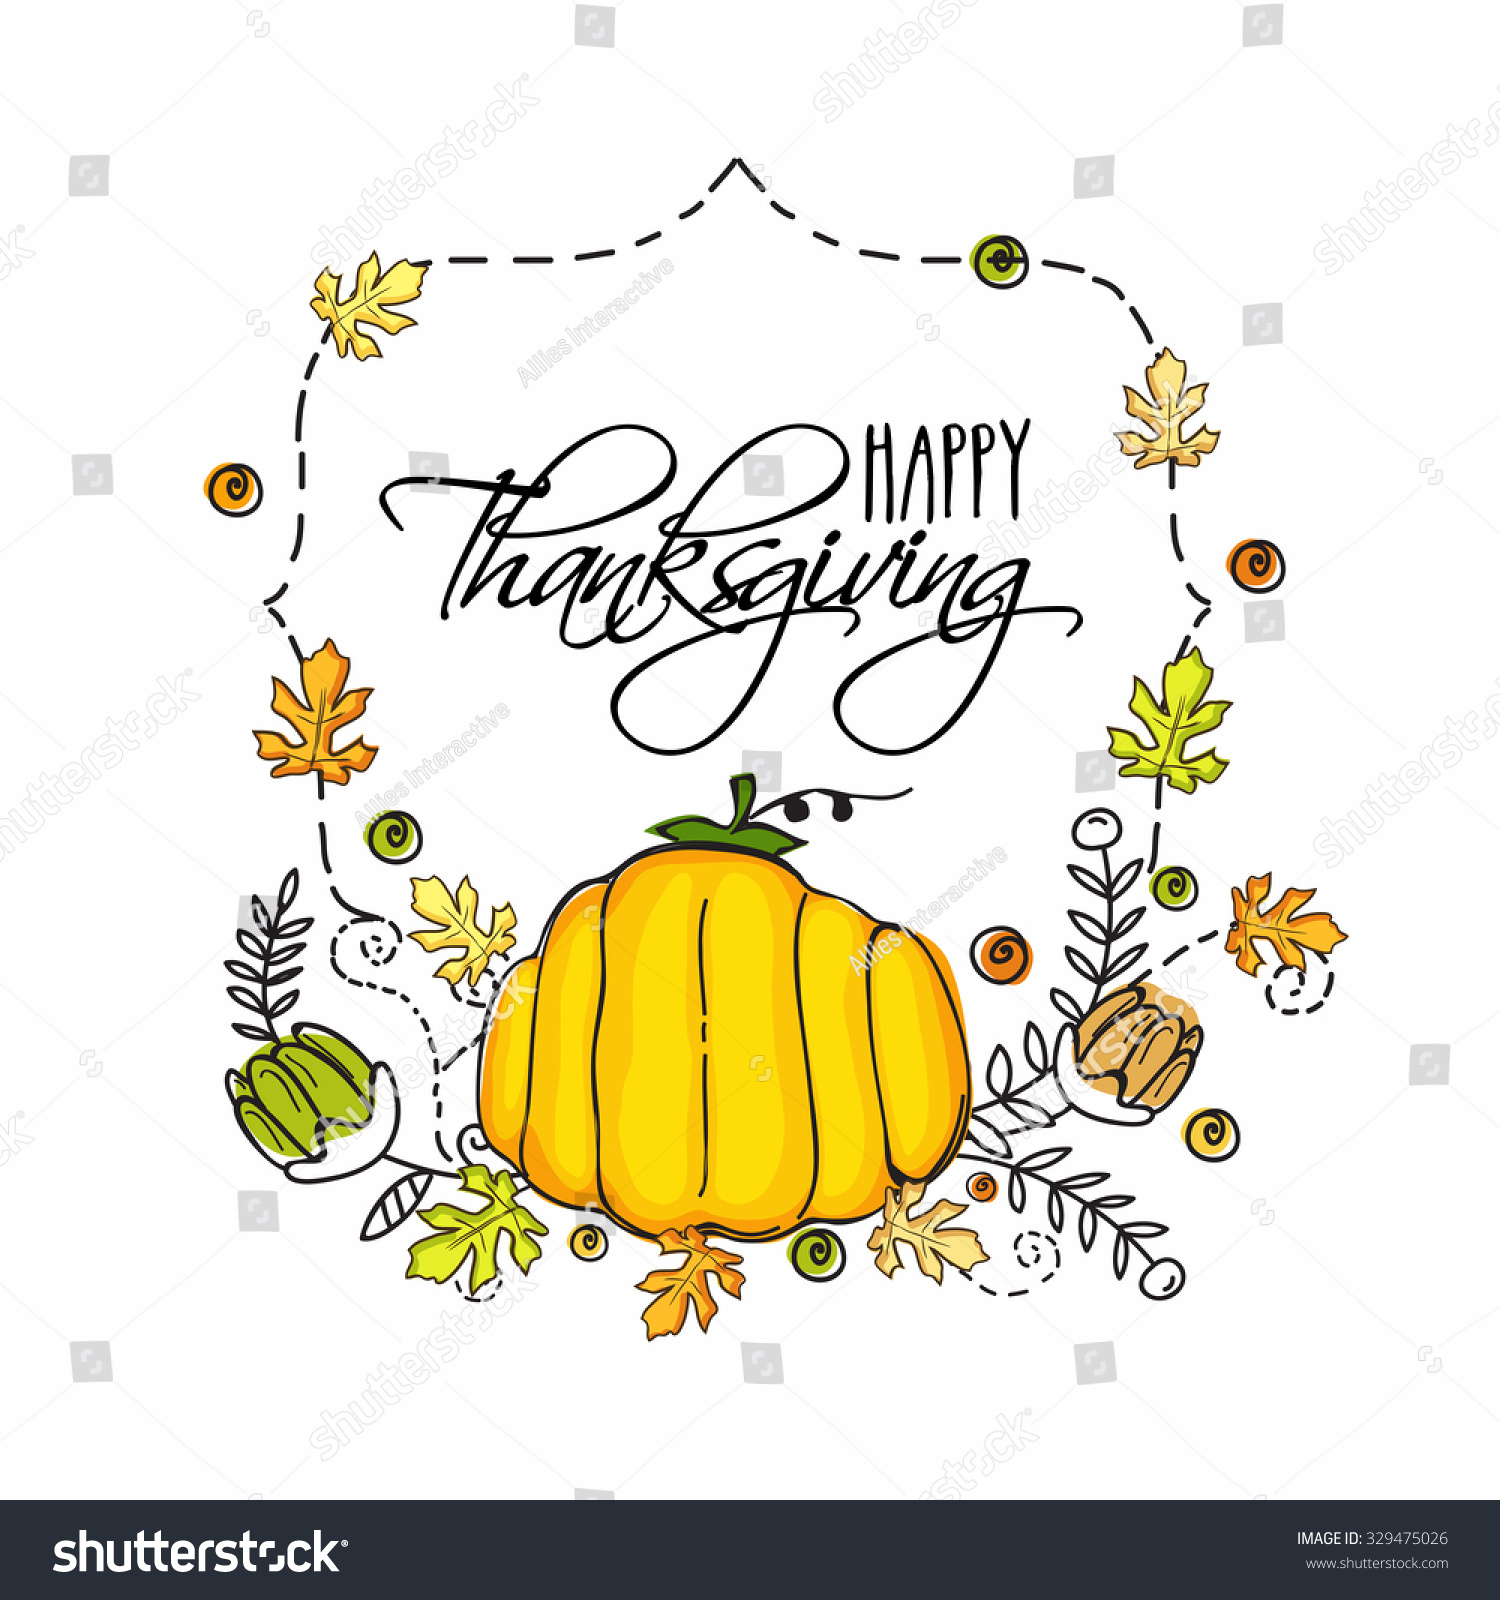 Creative greeting card design with shiny pumpkin for Happy Thanksgiving Day celebration